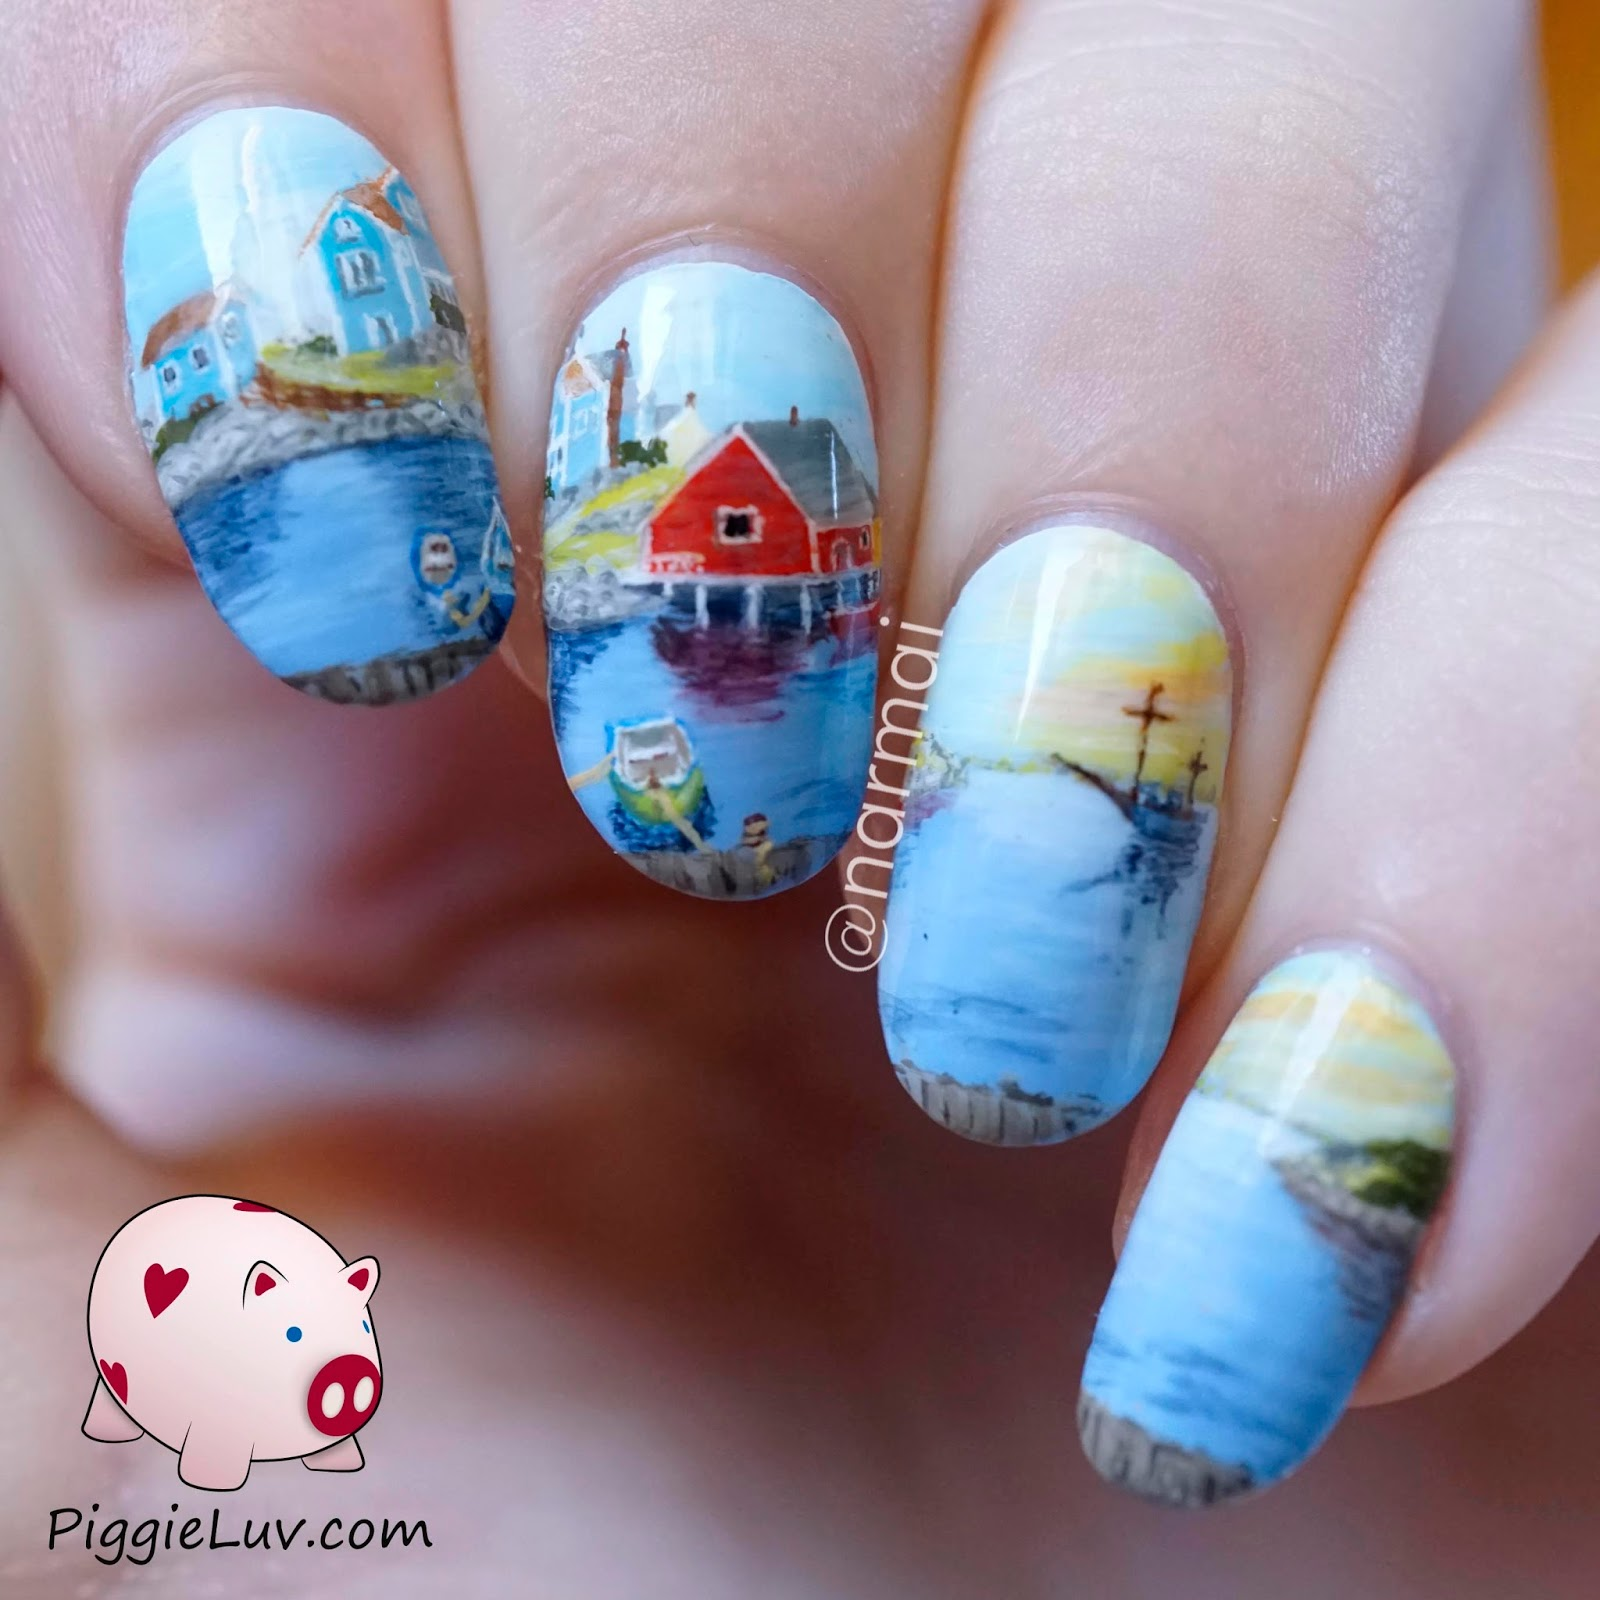 PiggieLuv: Peggy\'s Cove, nail art inspired by Raymond Edmonds